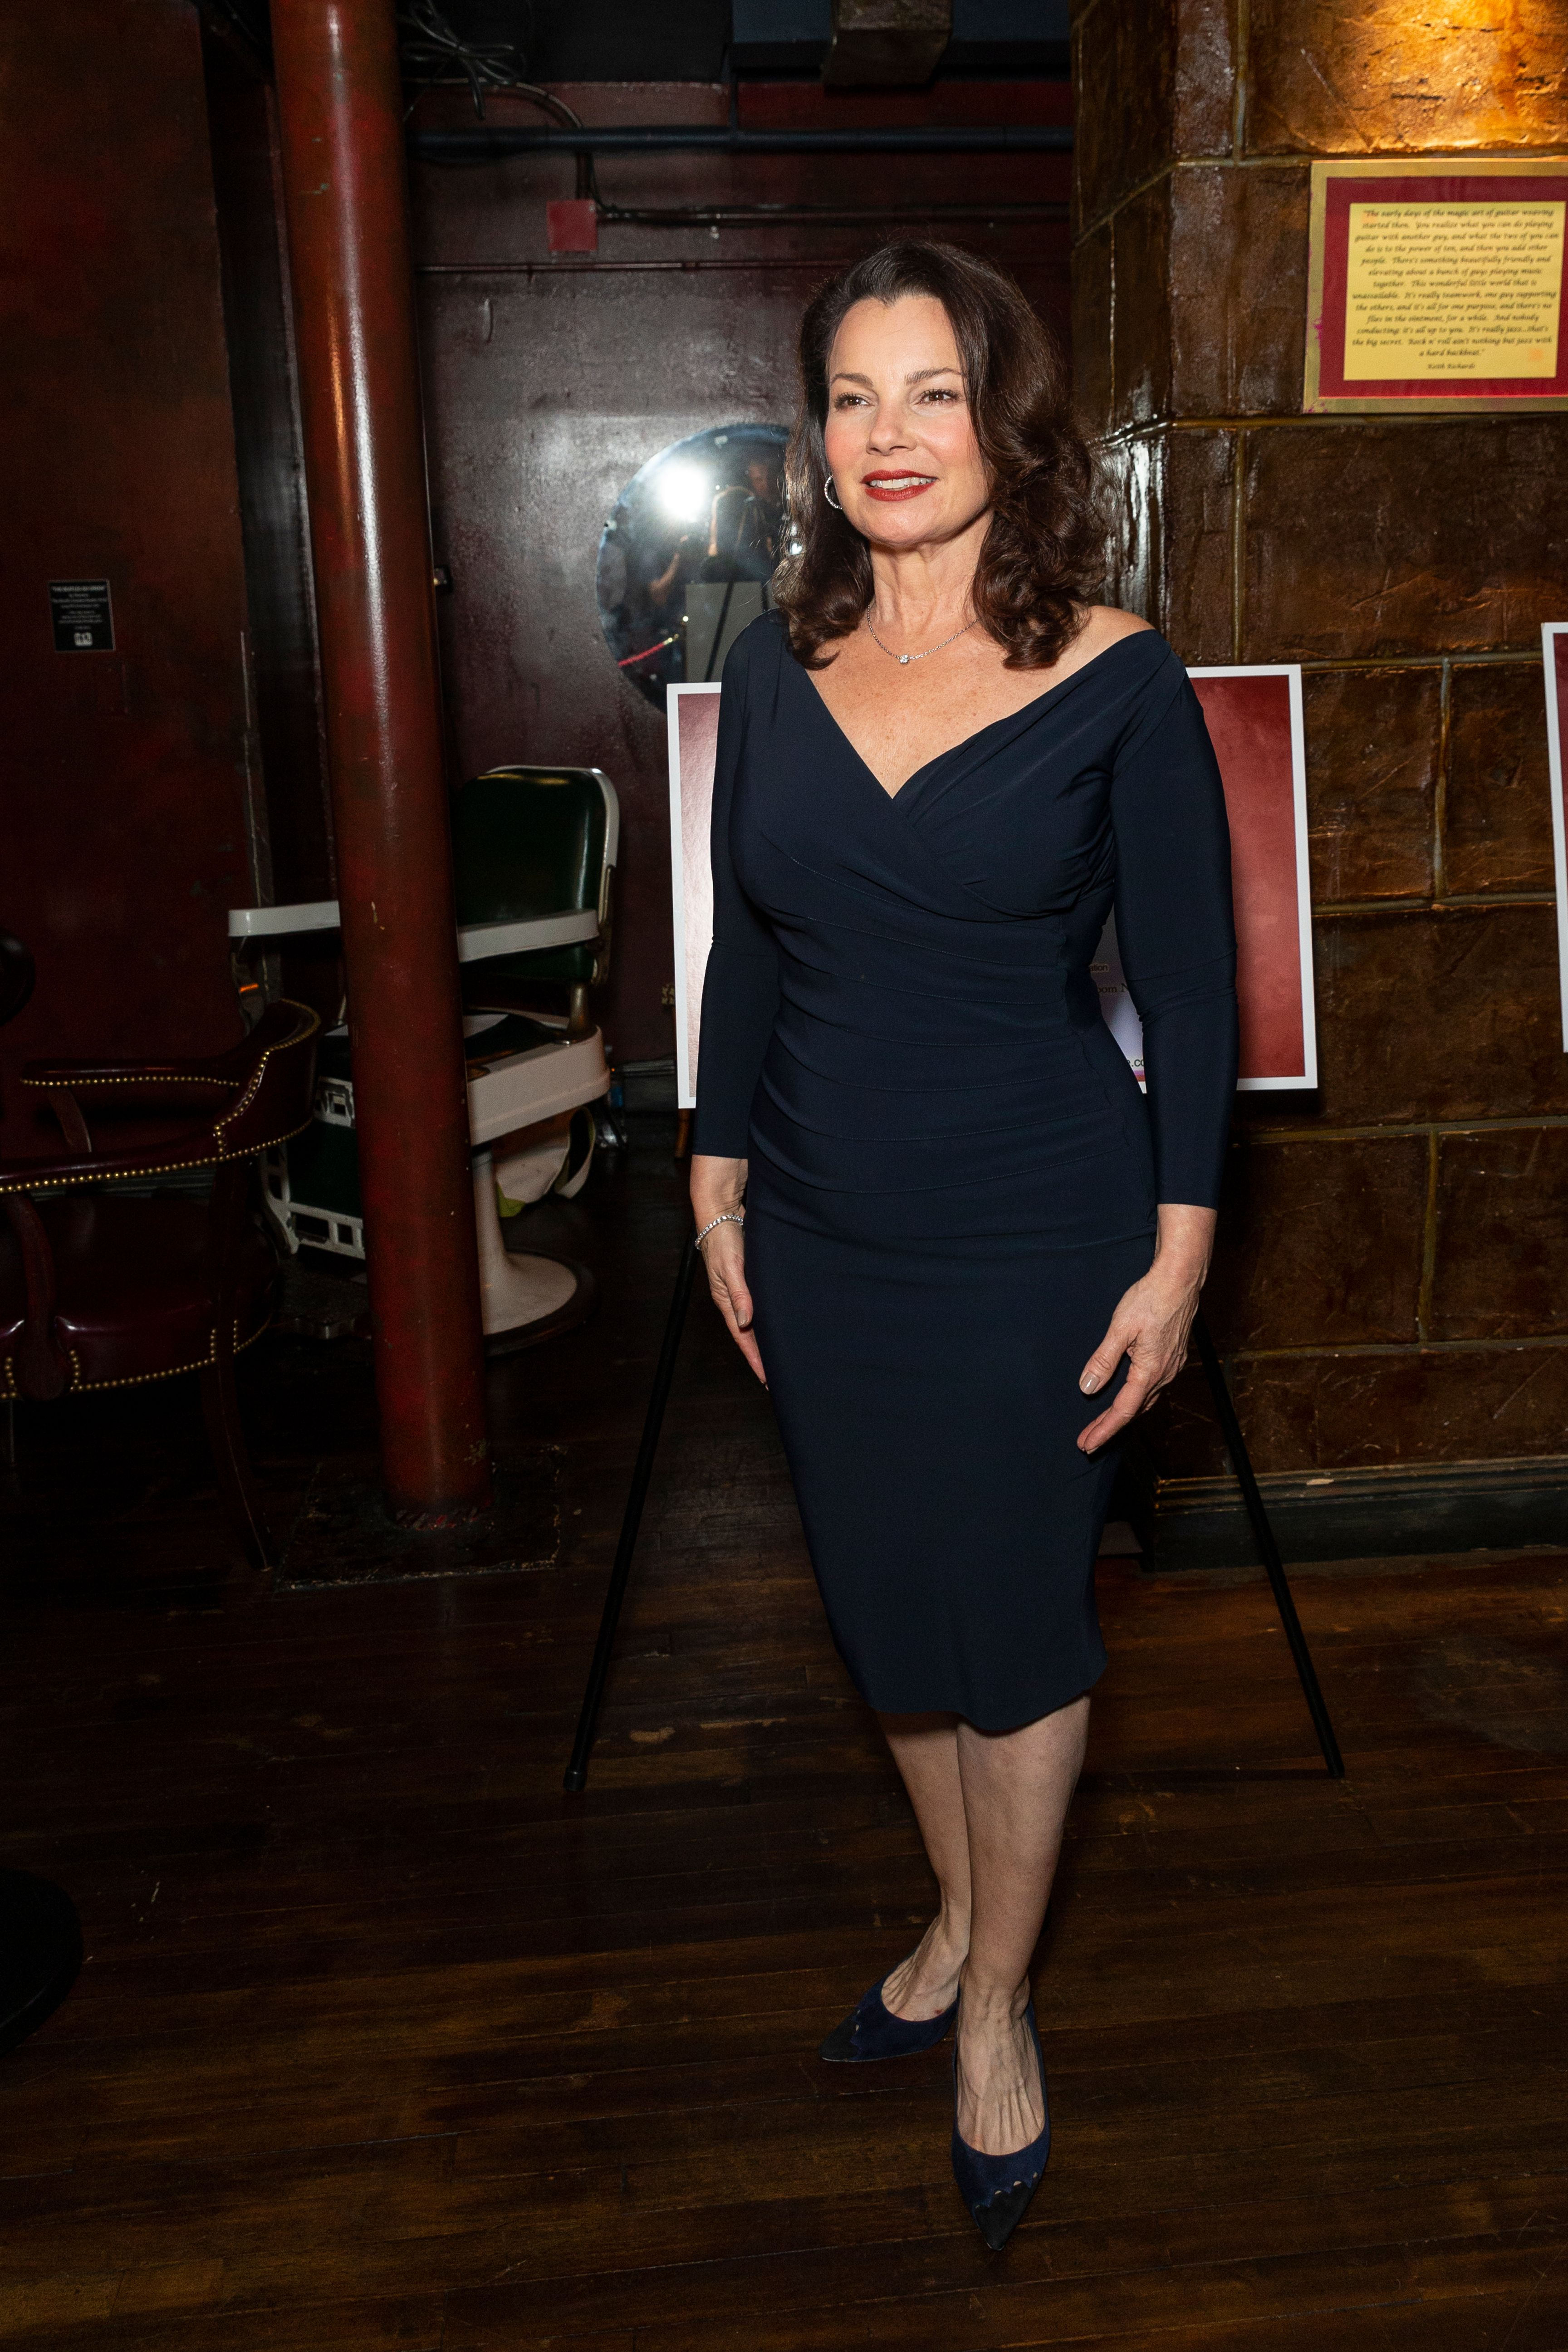 Fran Drescher attends the 8th Annual Benefit concert for the Tyler Clementy Foundation in New York on June 18, 2018 | Photo: Shutterstock